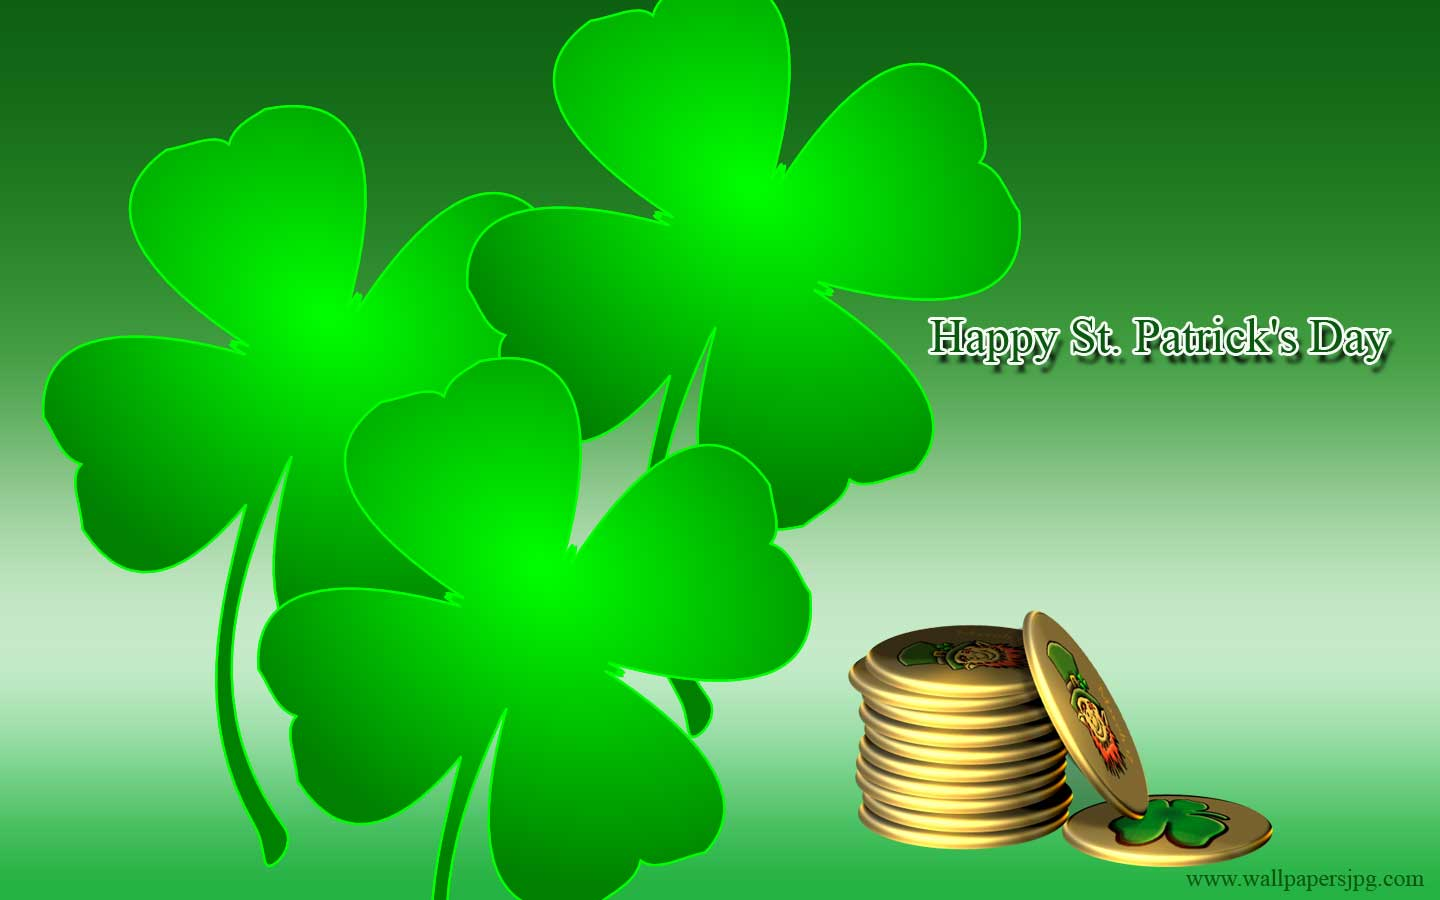 ... .com/images-of-fun-gallery-st-patrick-s-day-greetings-wallpapers.html